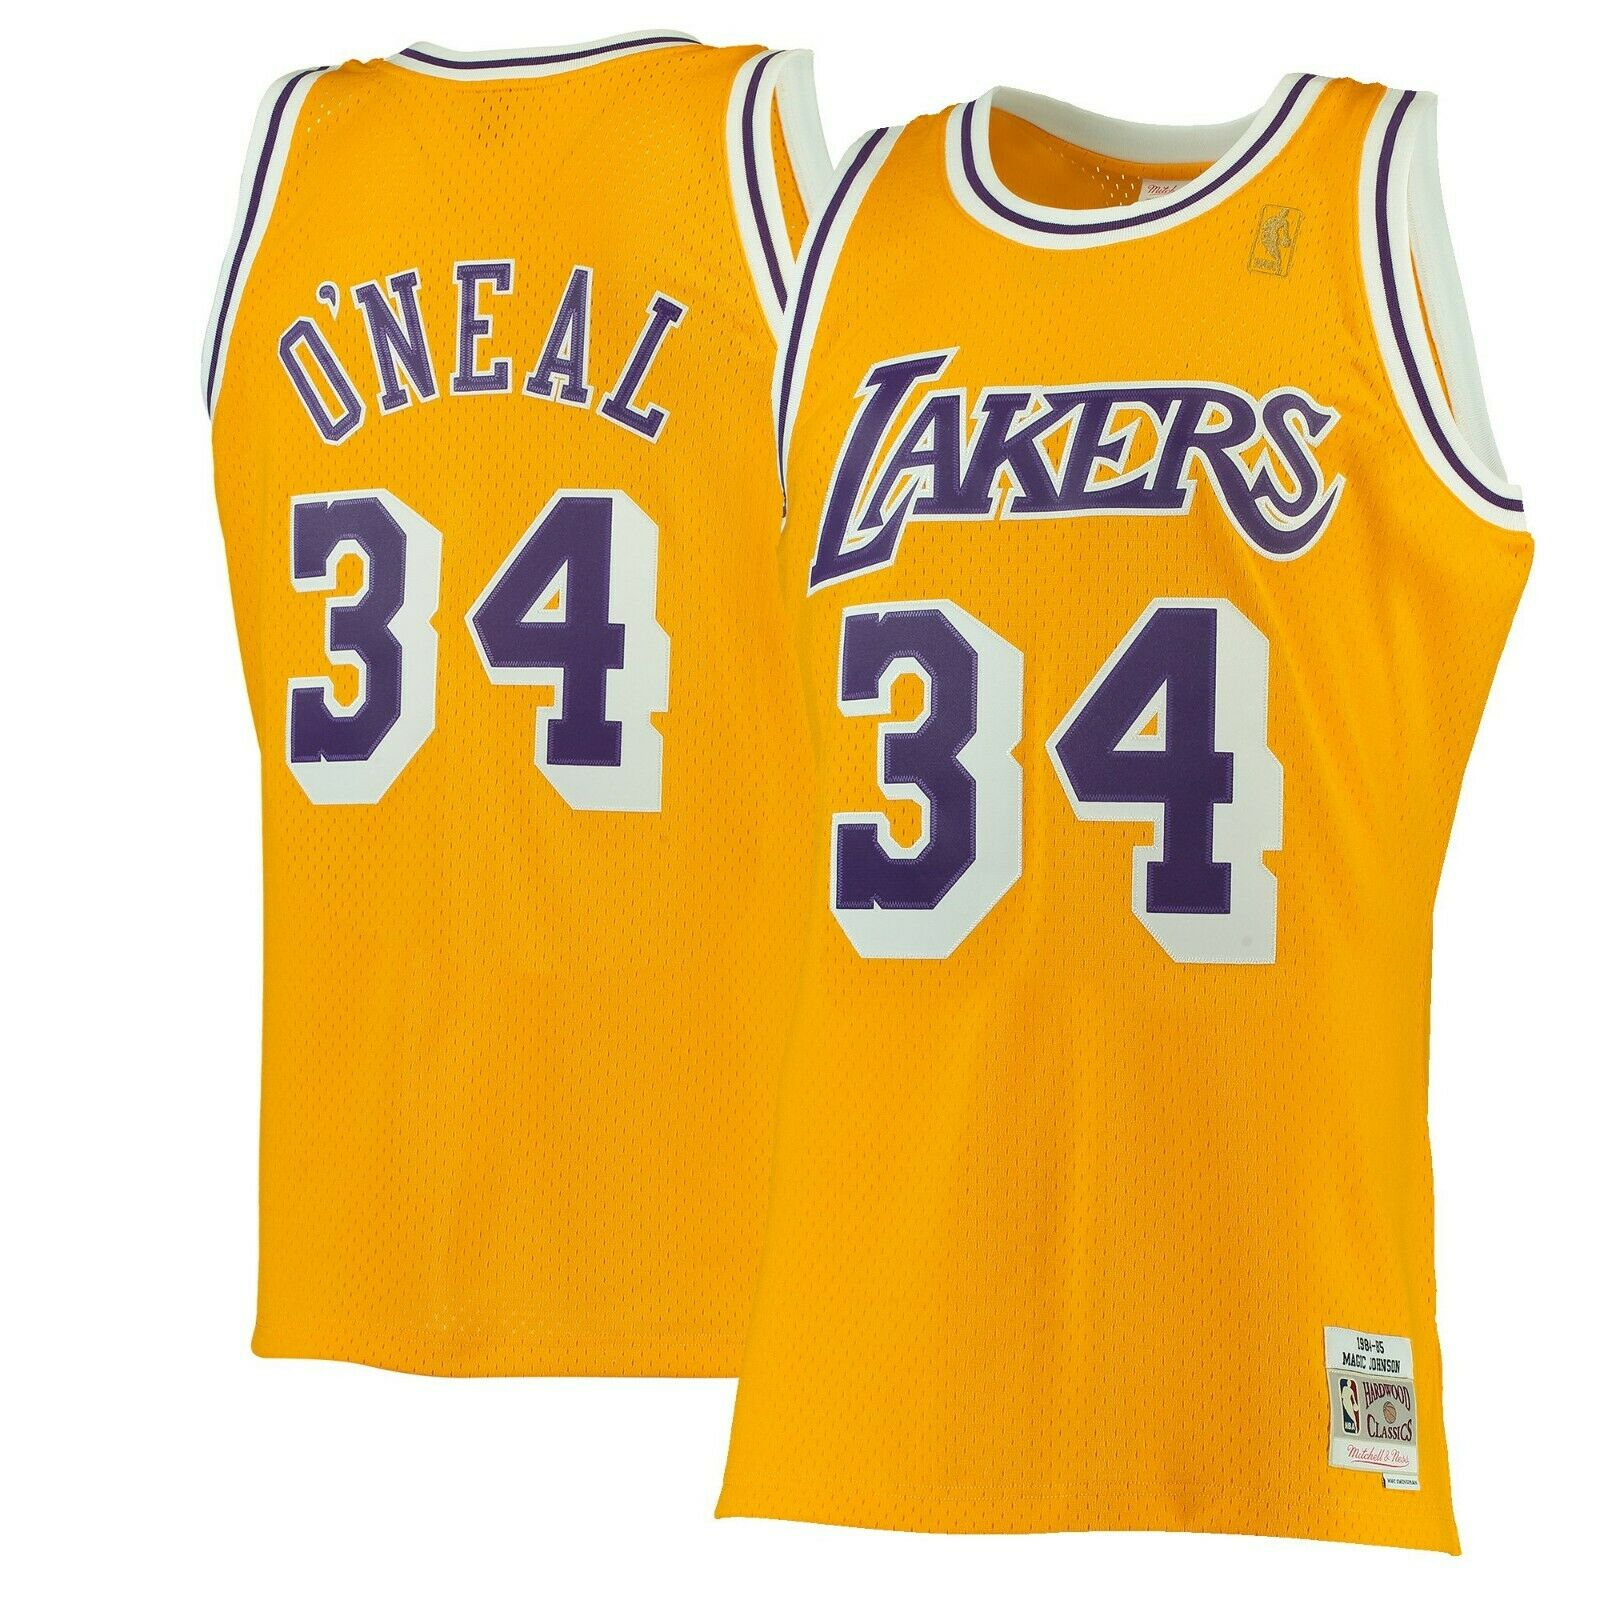 d5a29293d Shaquille O neal  34 Los Angeles Lakers Mitchell Ness NBA Swingman Jersey  Yellow